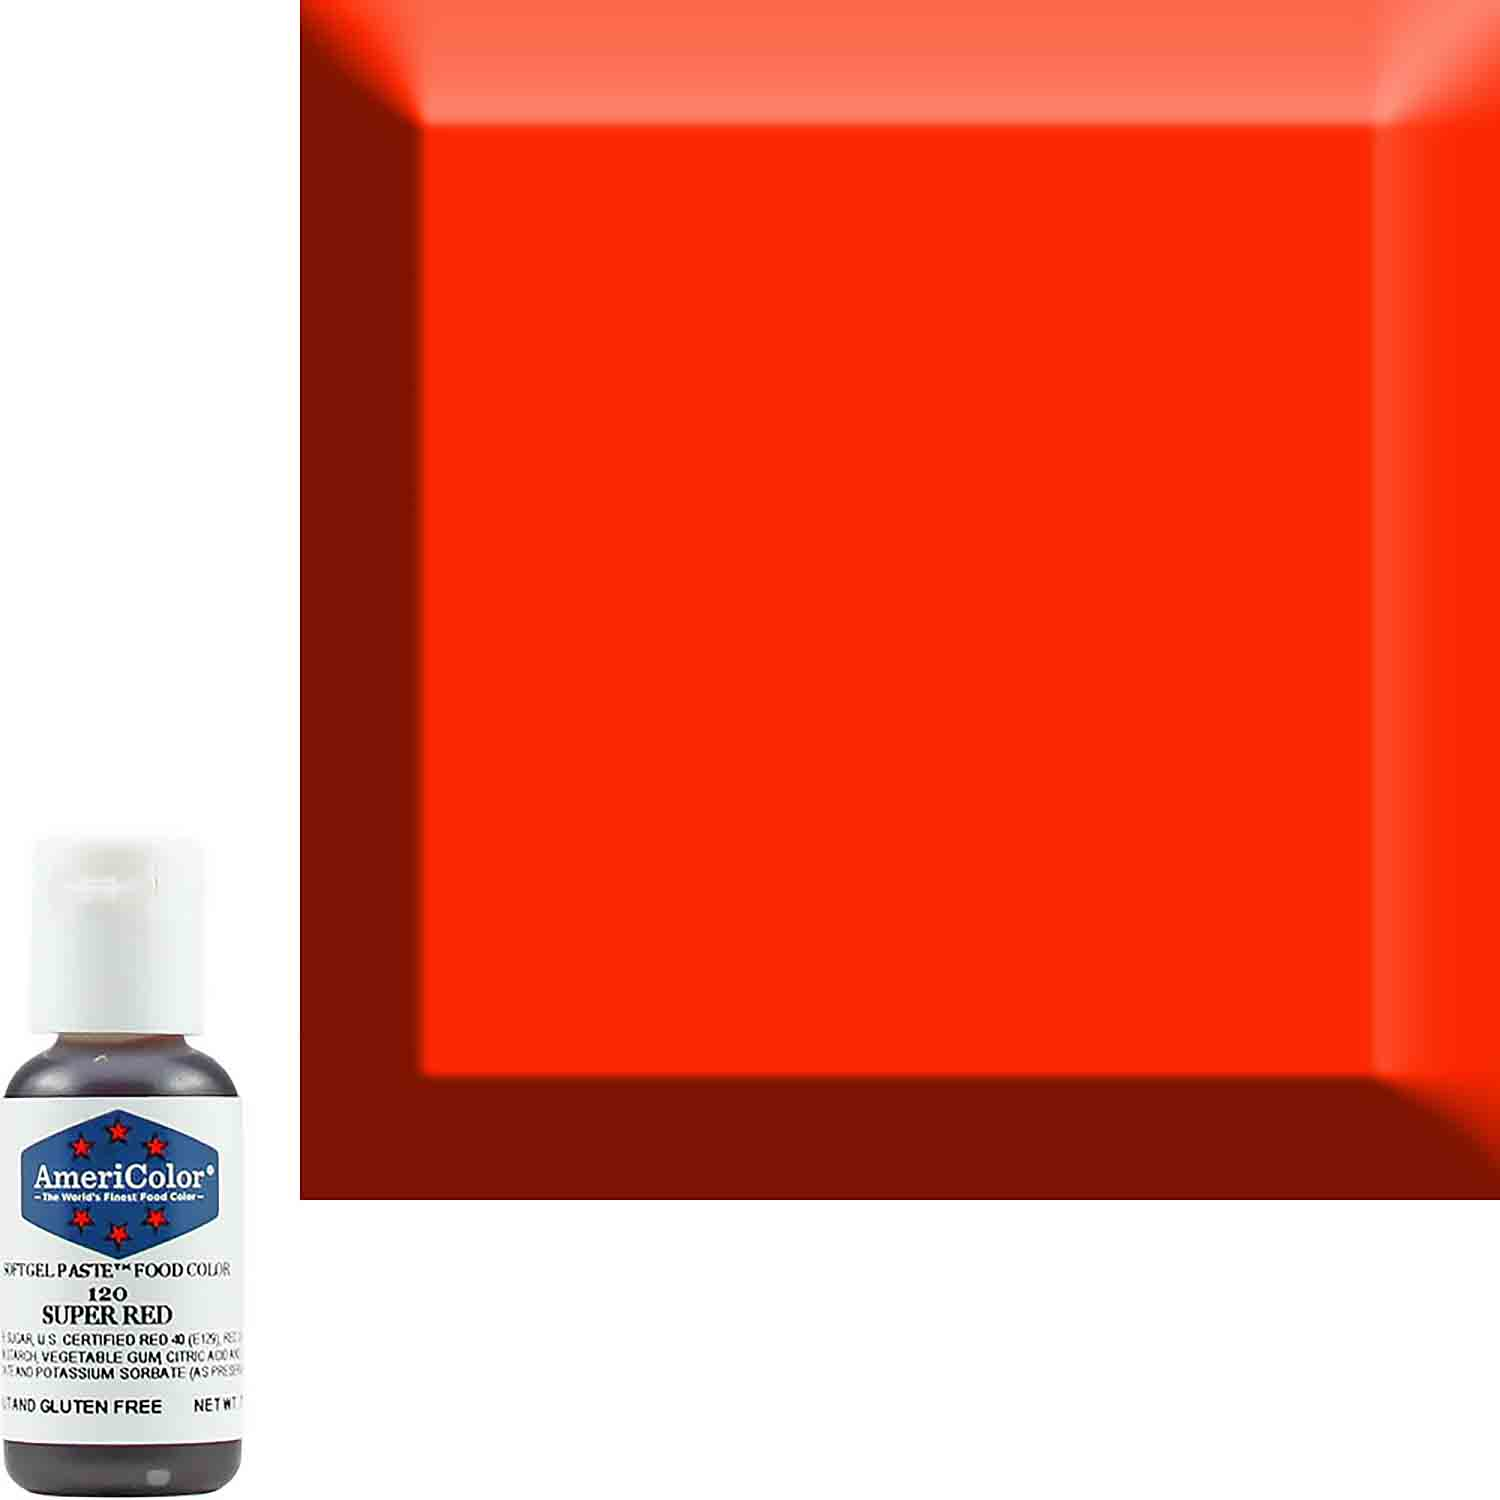 Super Red AmeriColor® Soft Gel Paste™ Food Color